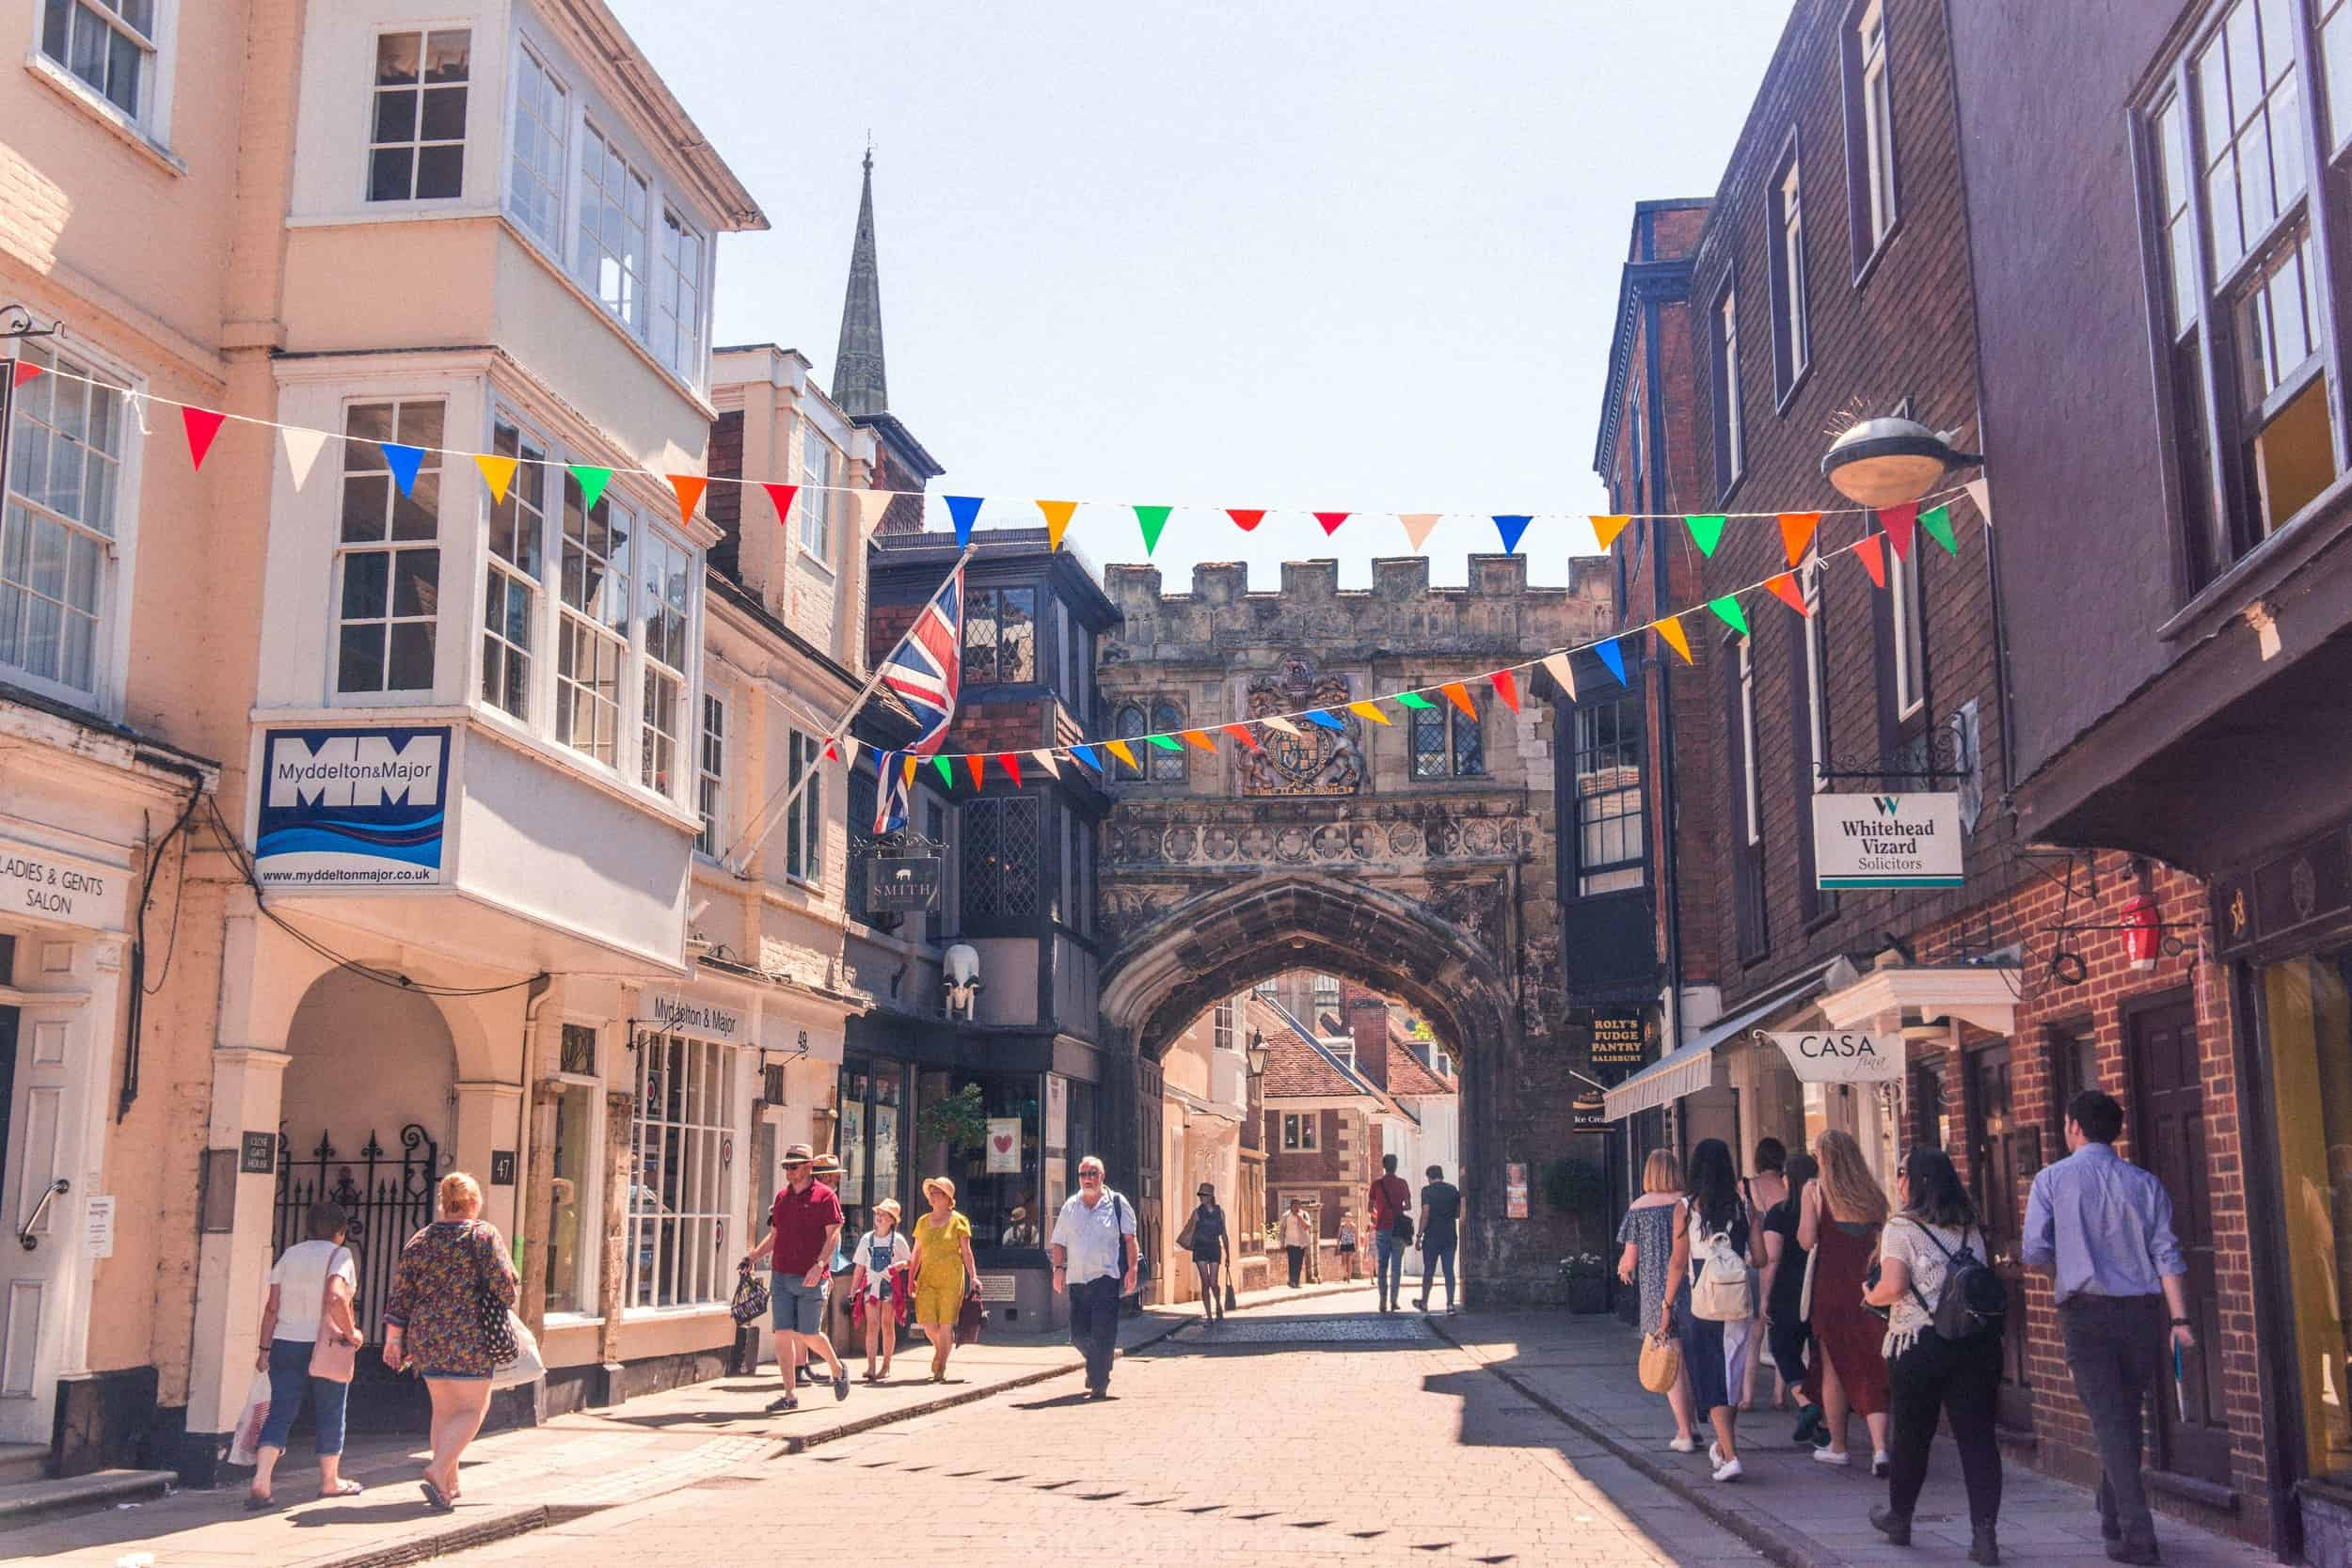 9 Wonderful Reasons to Visit Salisbury ASAP: The historic city of Salisbury, Wiltshire is a beautiful market city with an iconic cathedral, independent stores and timber-framed buildings. Here's why you should add it to you England bucket list!